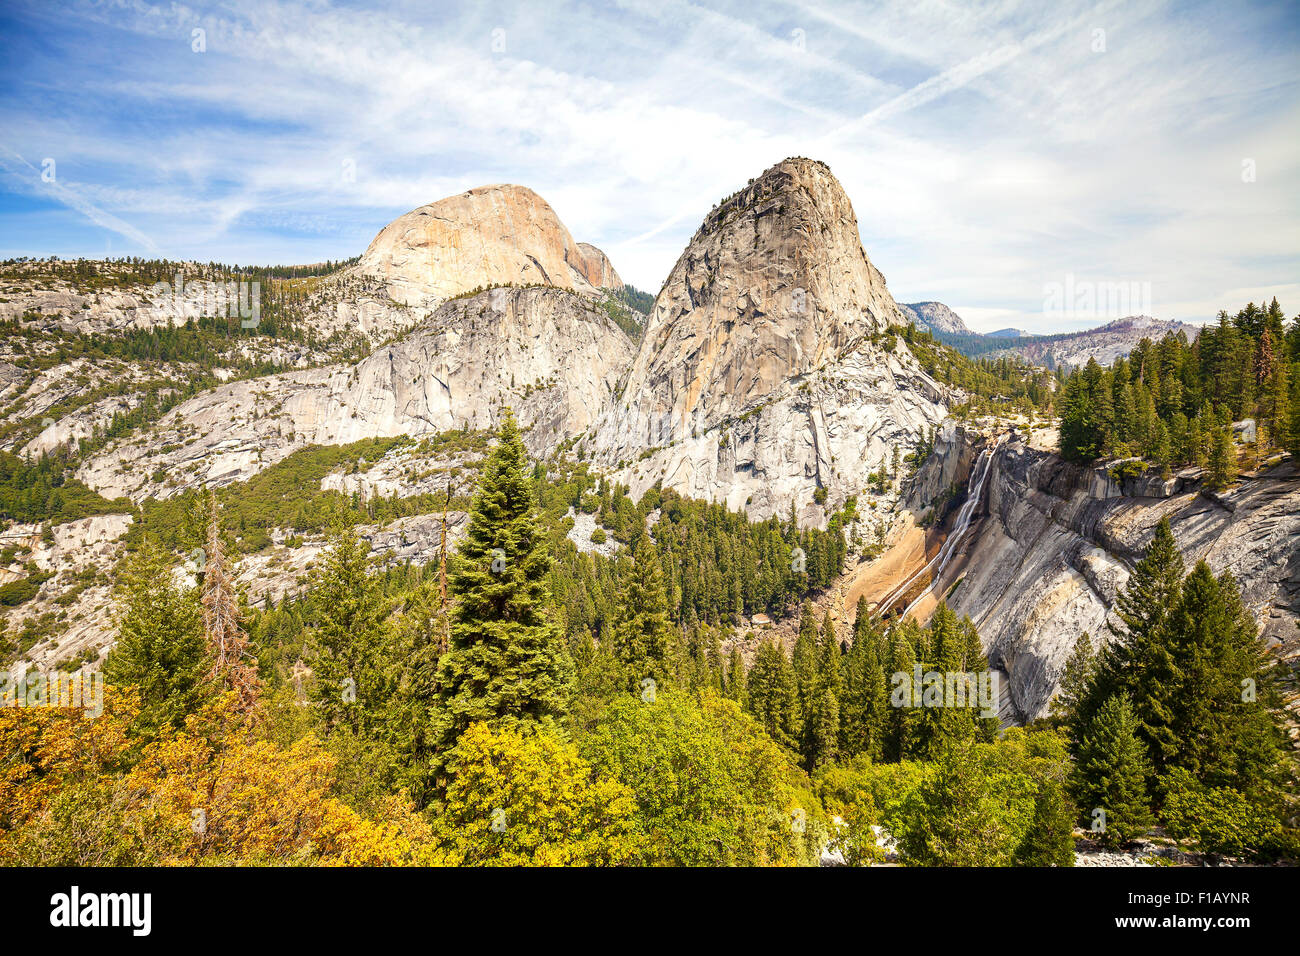 Nevada Fall im Yosemite Nationalpark, Kalifornien, USA. Stockbild